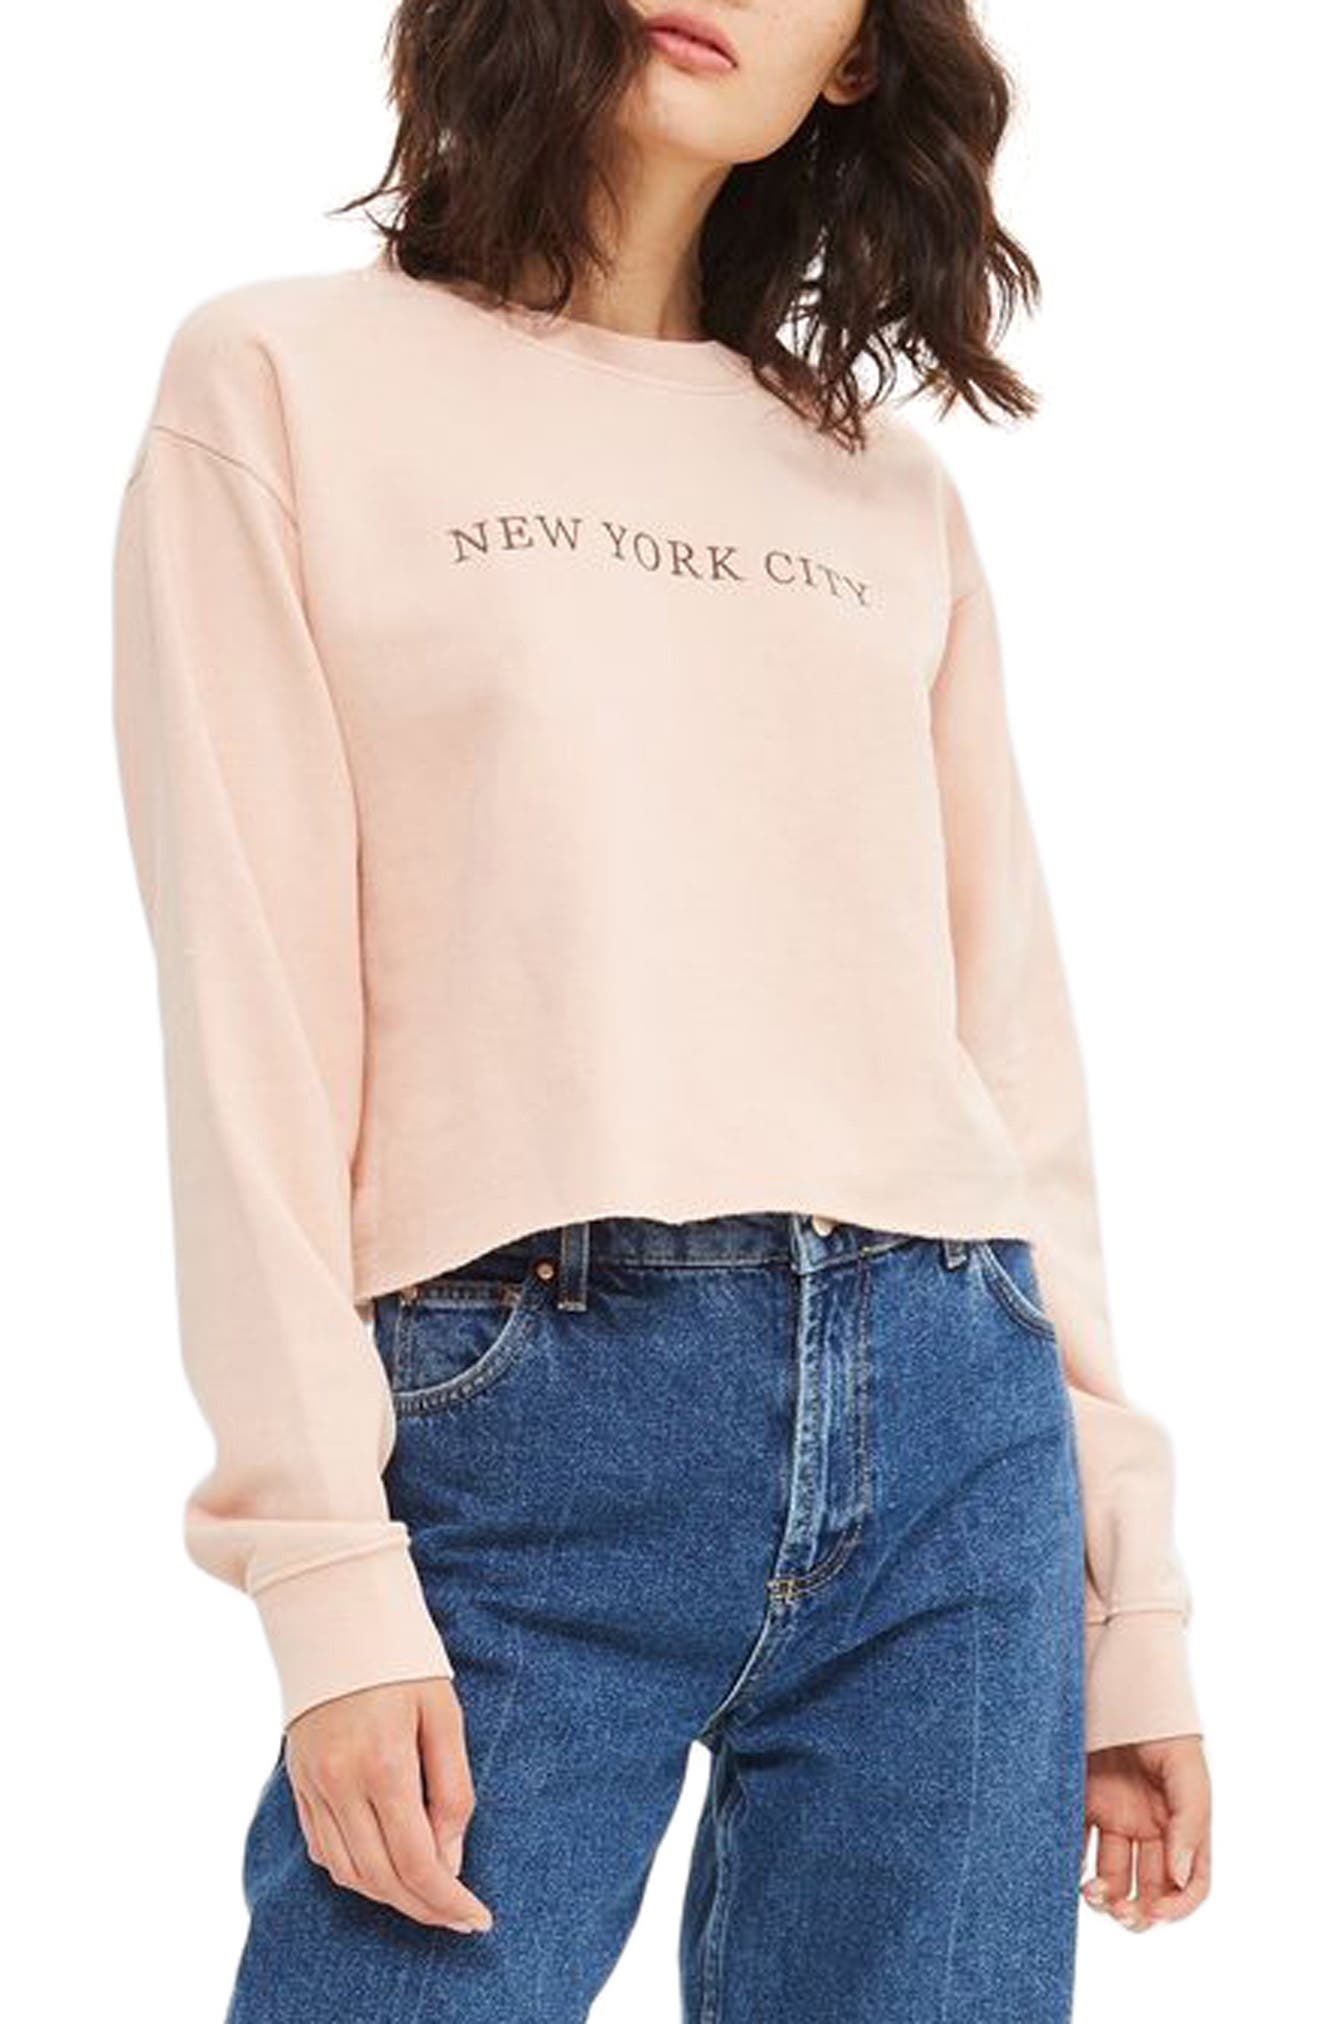 New York City Embroidered Sweatshirt,                         Main,                         color, 650